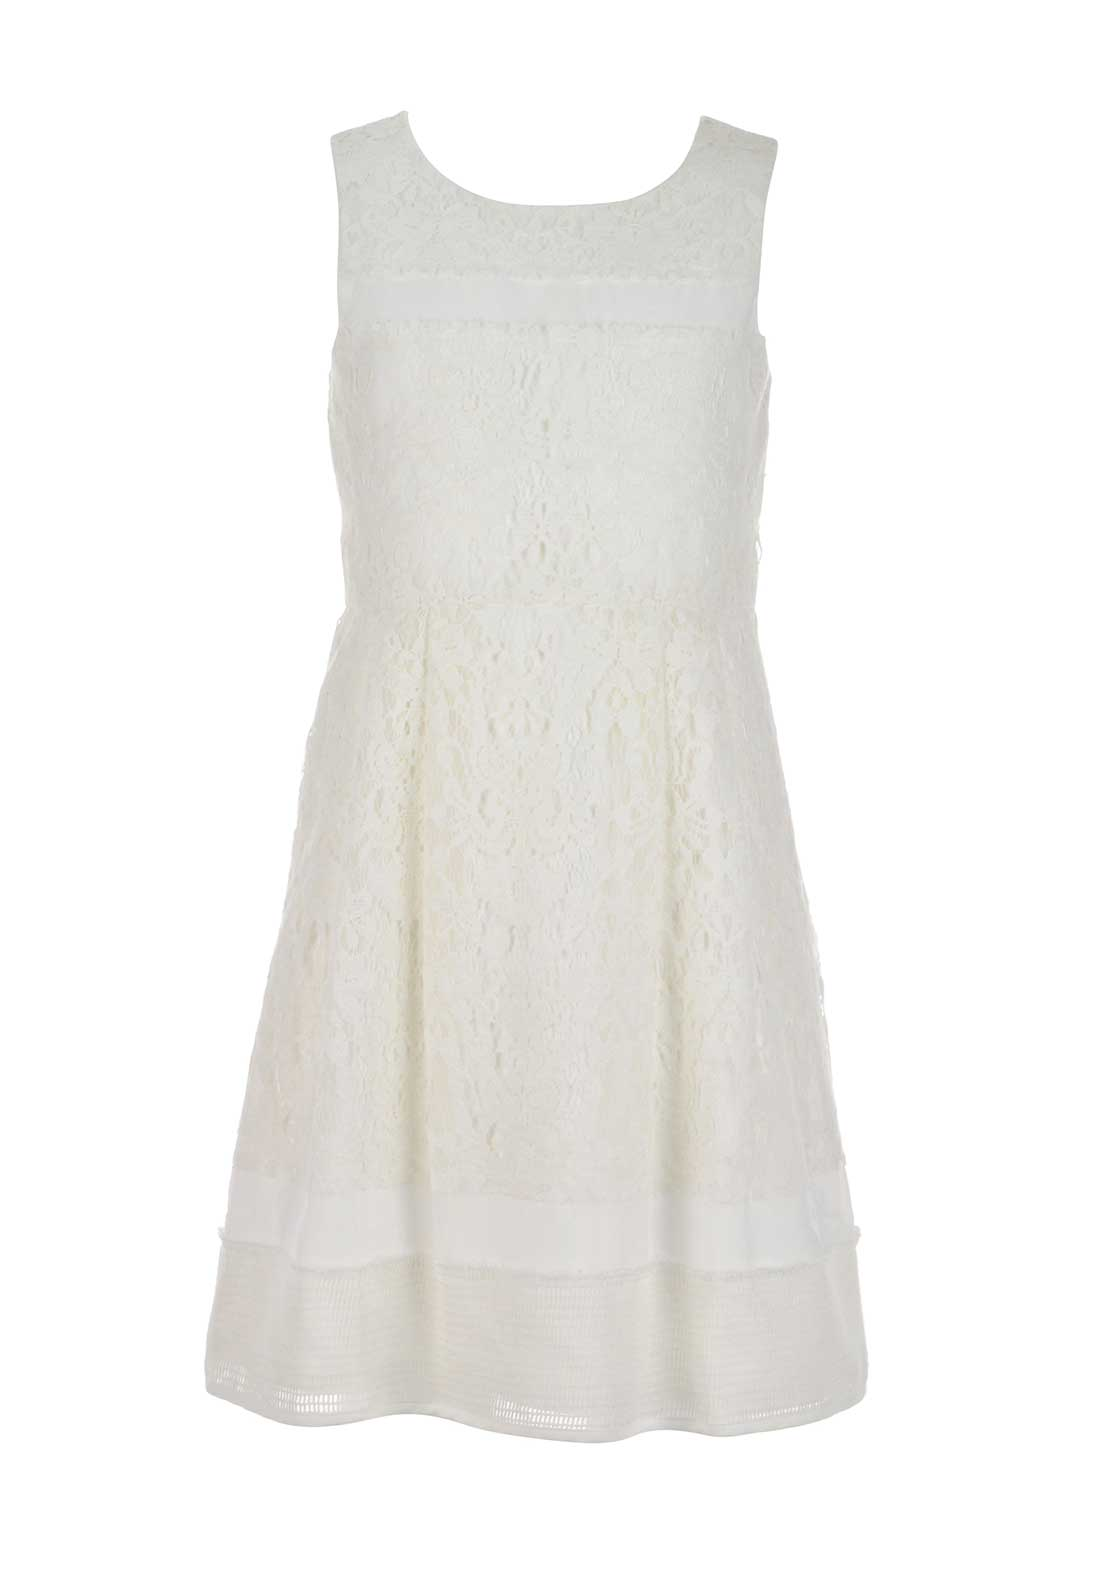 Derhy Girls Celeste Sleeveless Lace Skater Dress, White